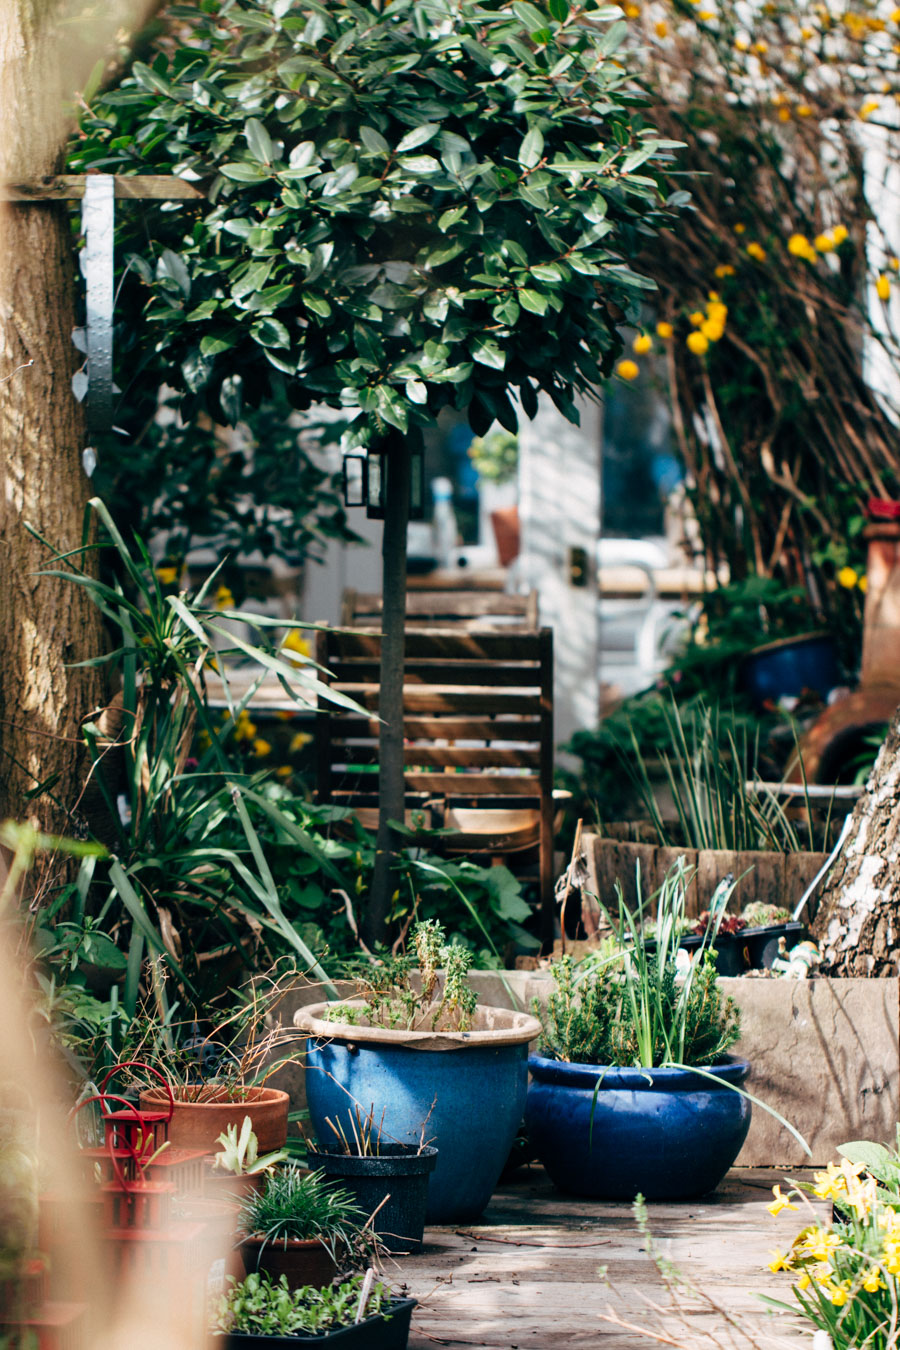 The prettiest urban garden